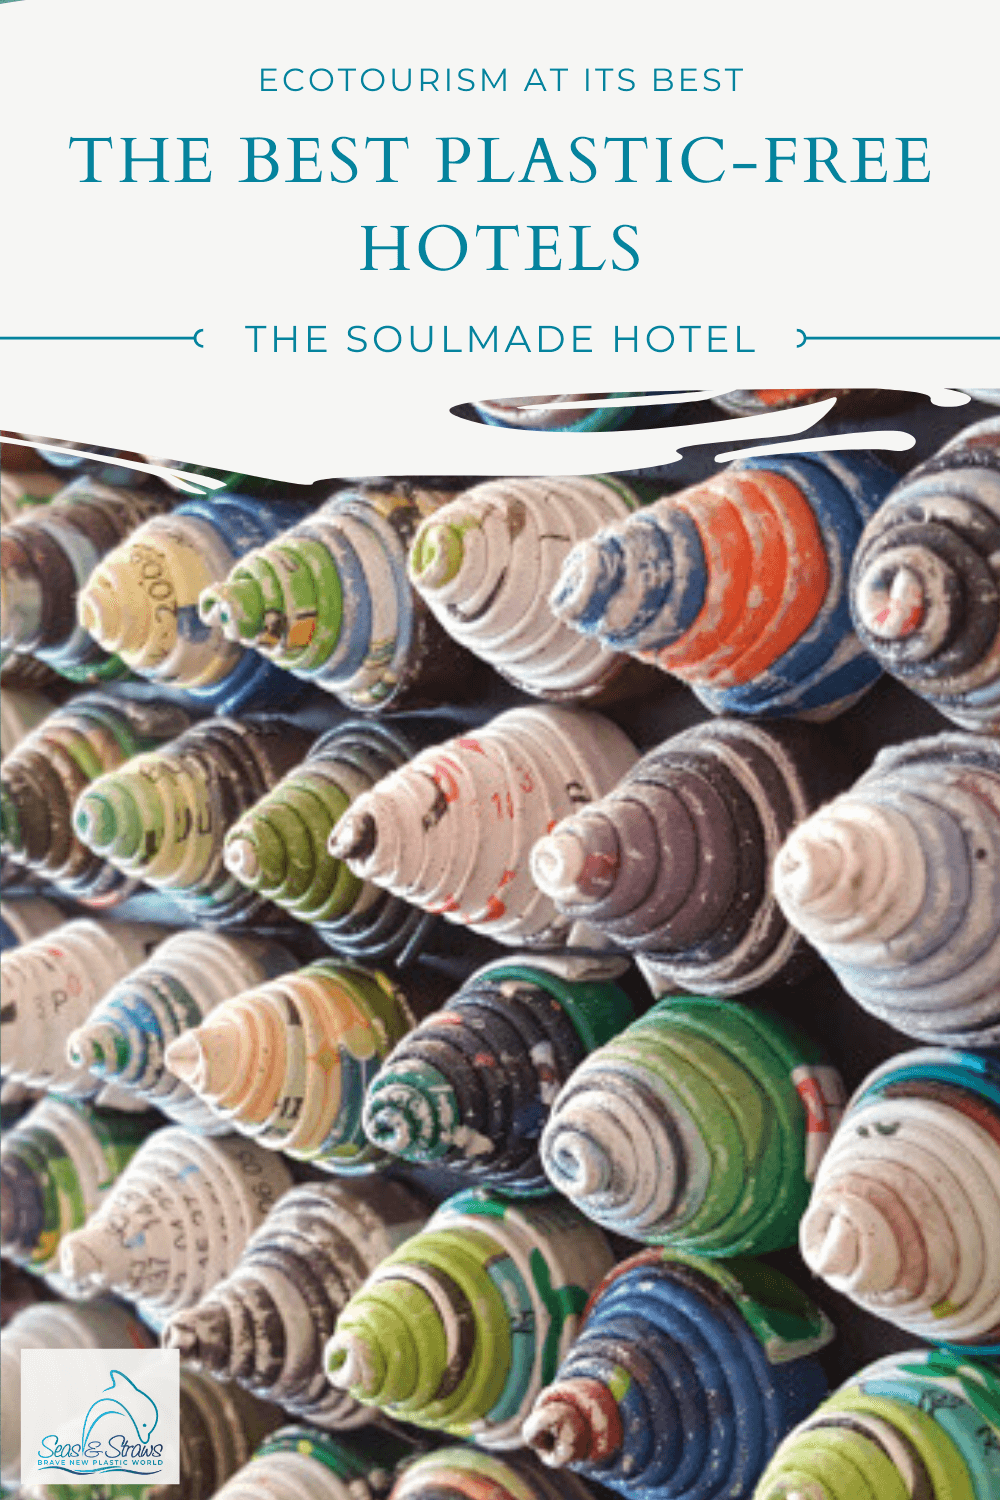 The best plastic-free hotels - The Soulmade